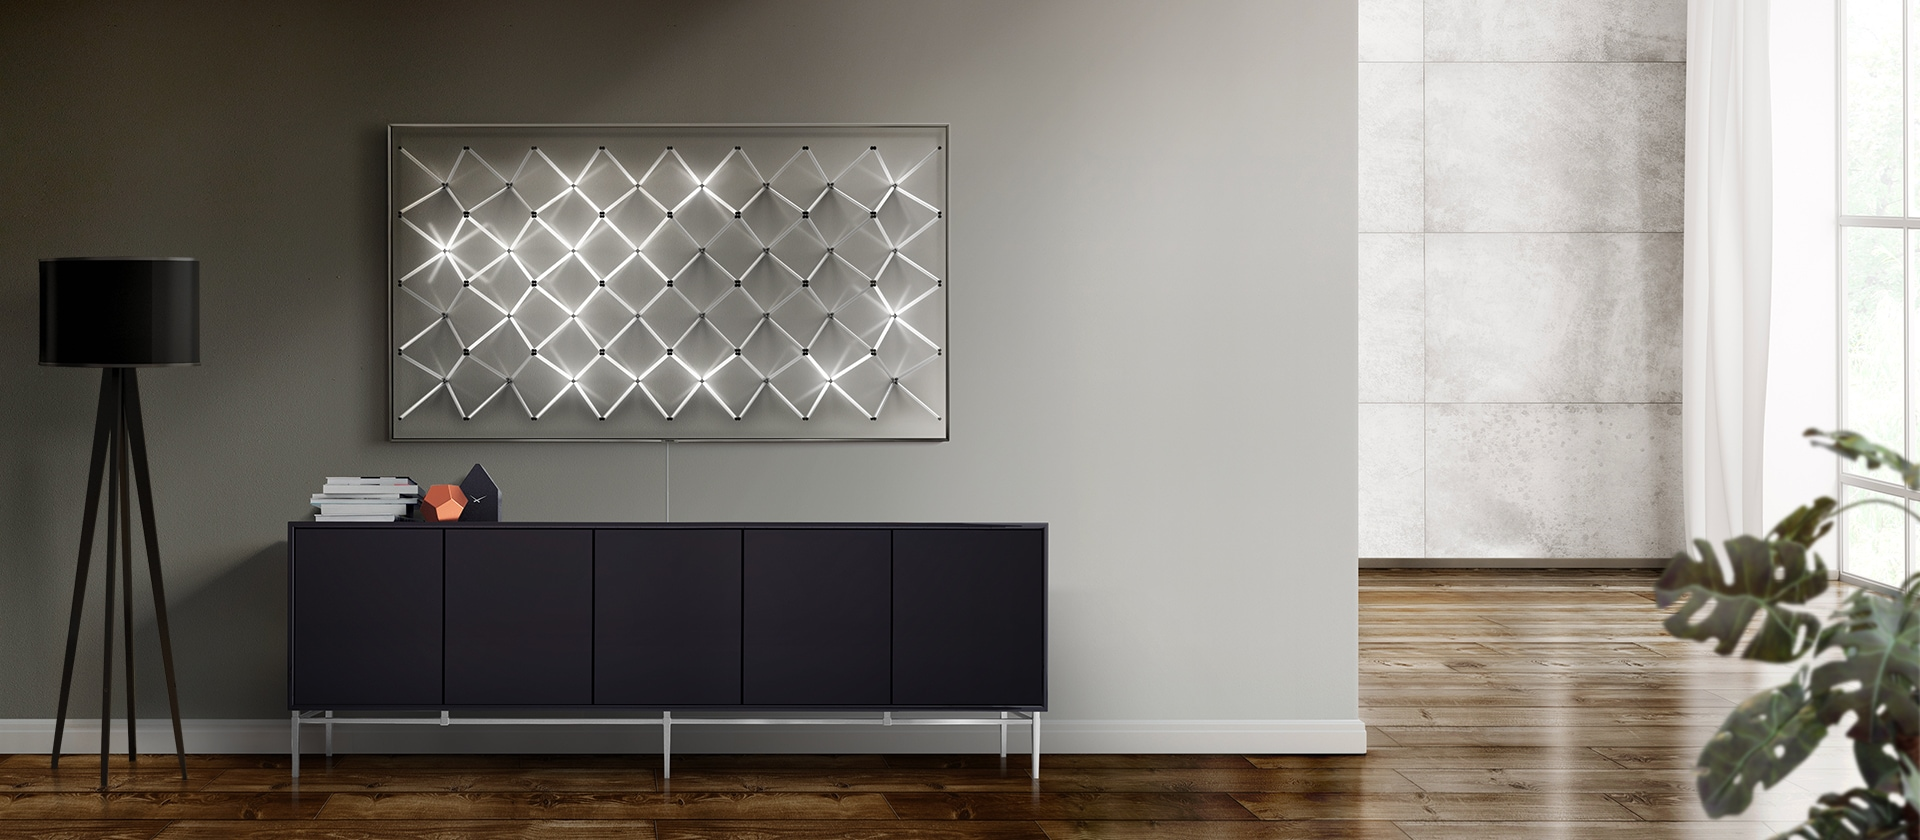 Ambient mode of Samsung's new QLED TV displays new contents in a light grid pattern to offer a fitting addition to the wall decor in the living room.